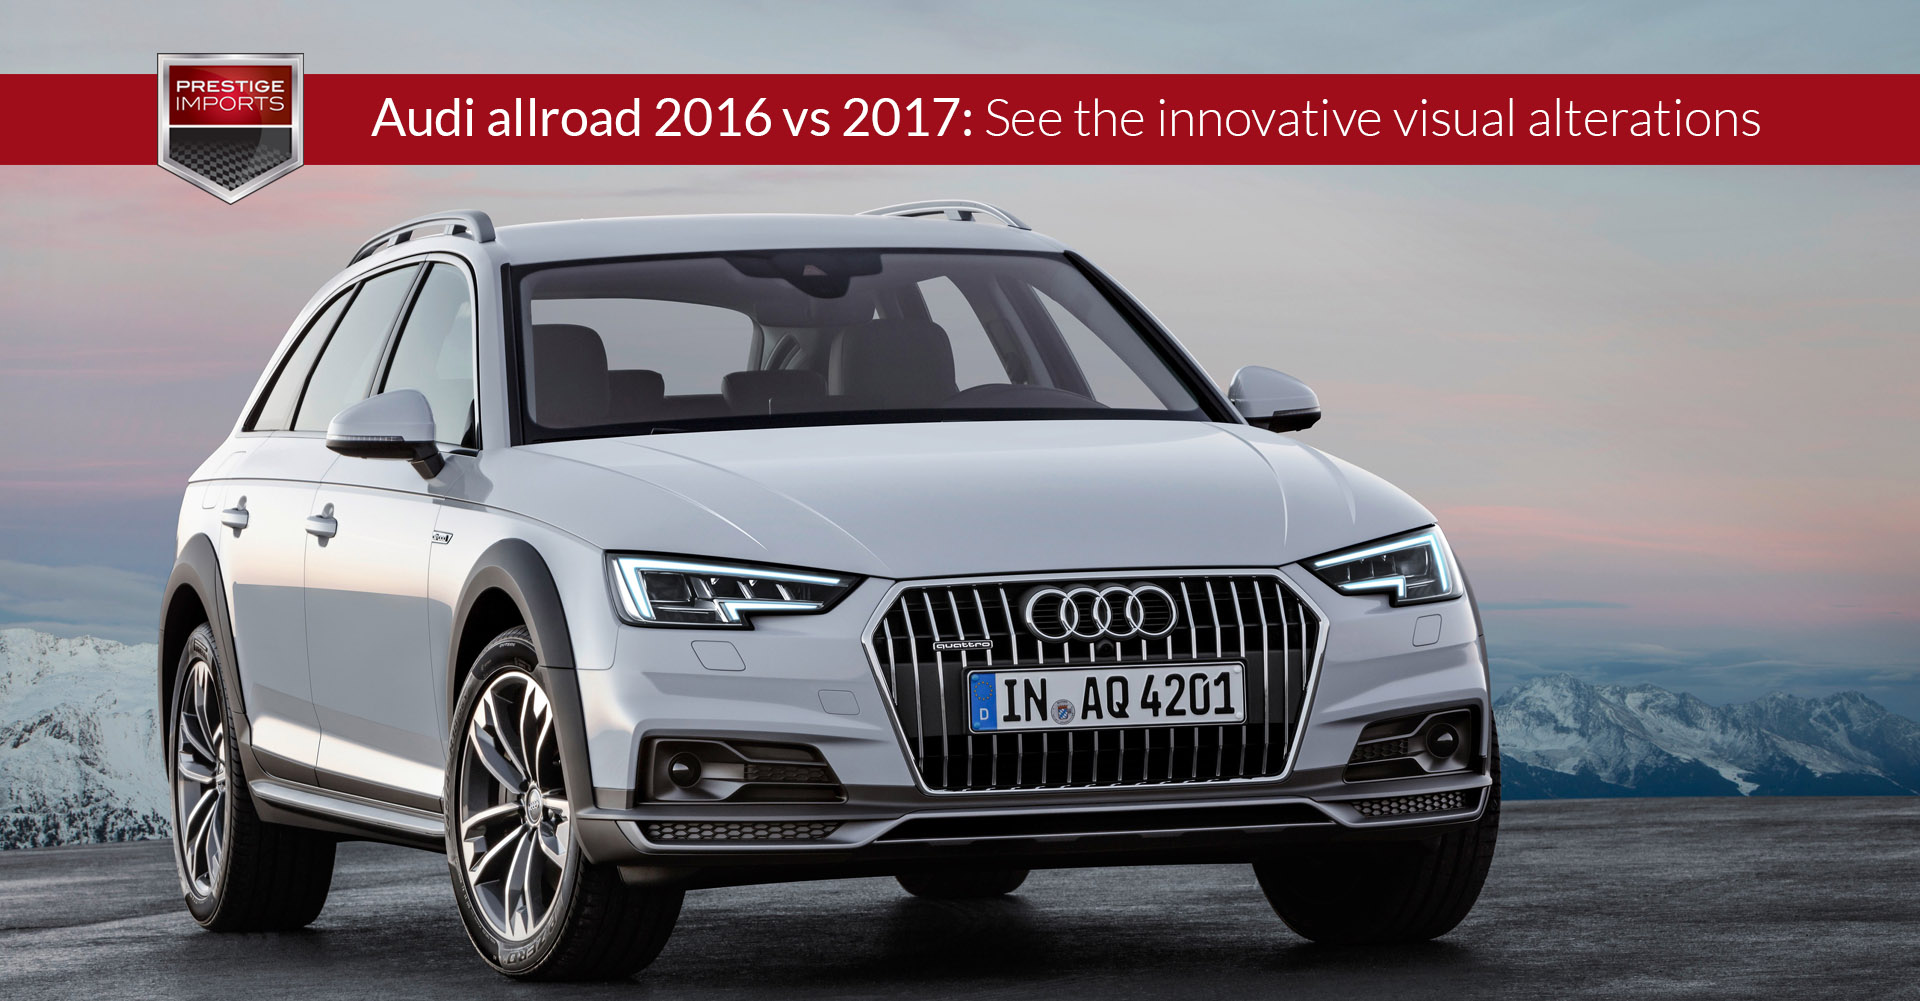 Certified Pre Owned Audi Q5 >> Audi allroad 2016 vs 2017: See the innovative visual ...